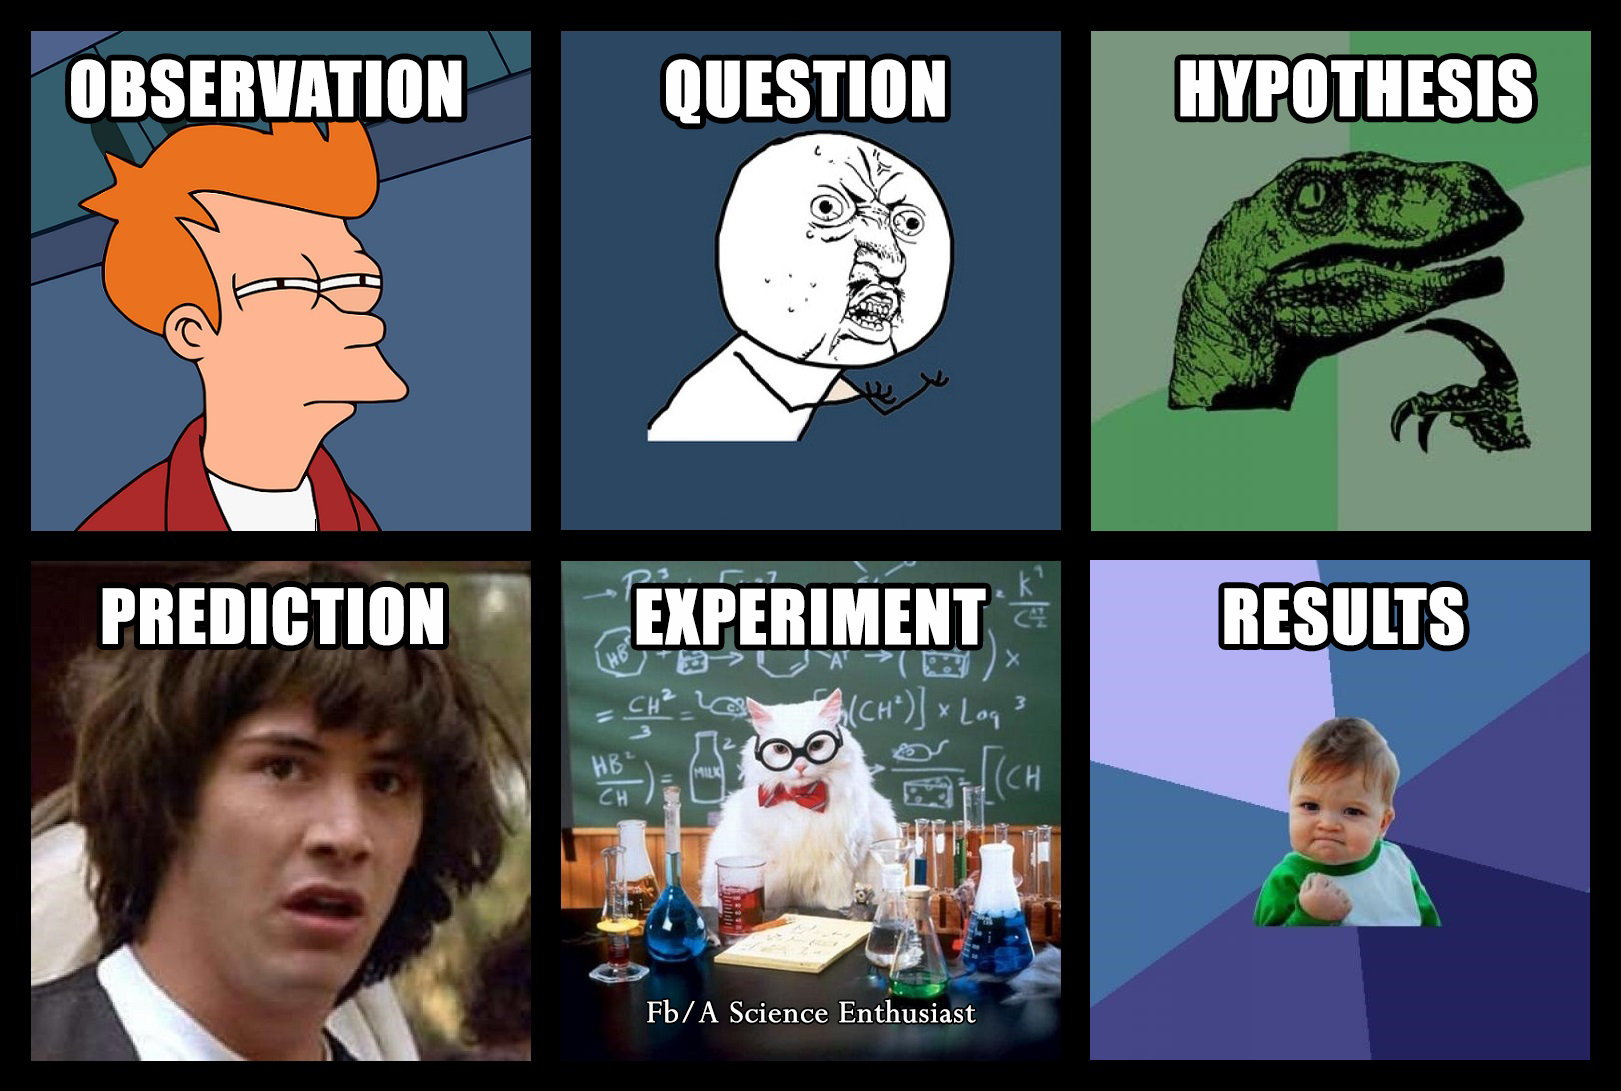 scientific method science steps meme memes types 8th grade matter version projects biology visit